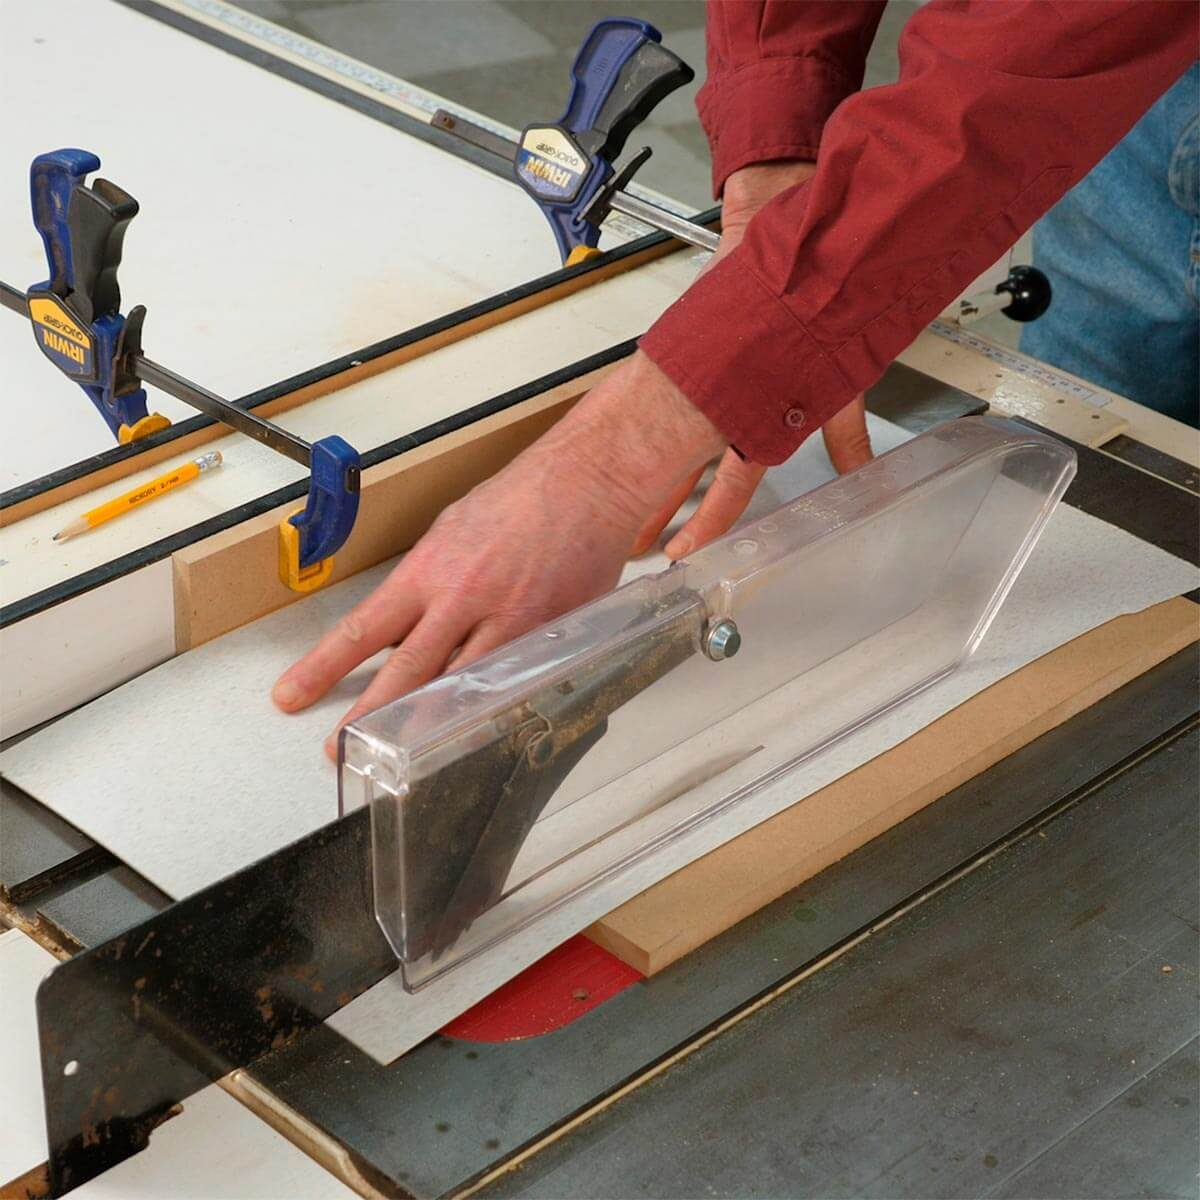 How To Cut Thin Material On A Table Saw The Family Handyman